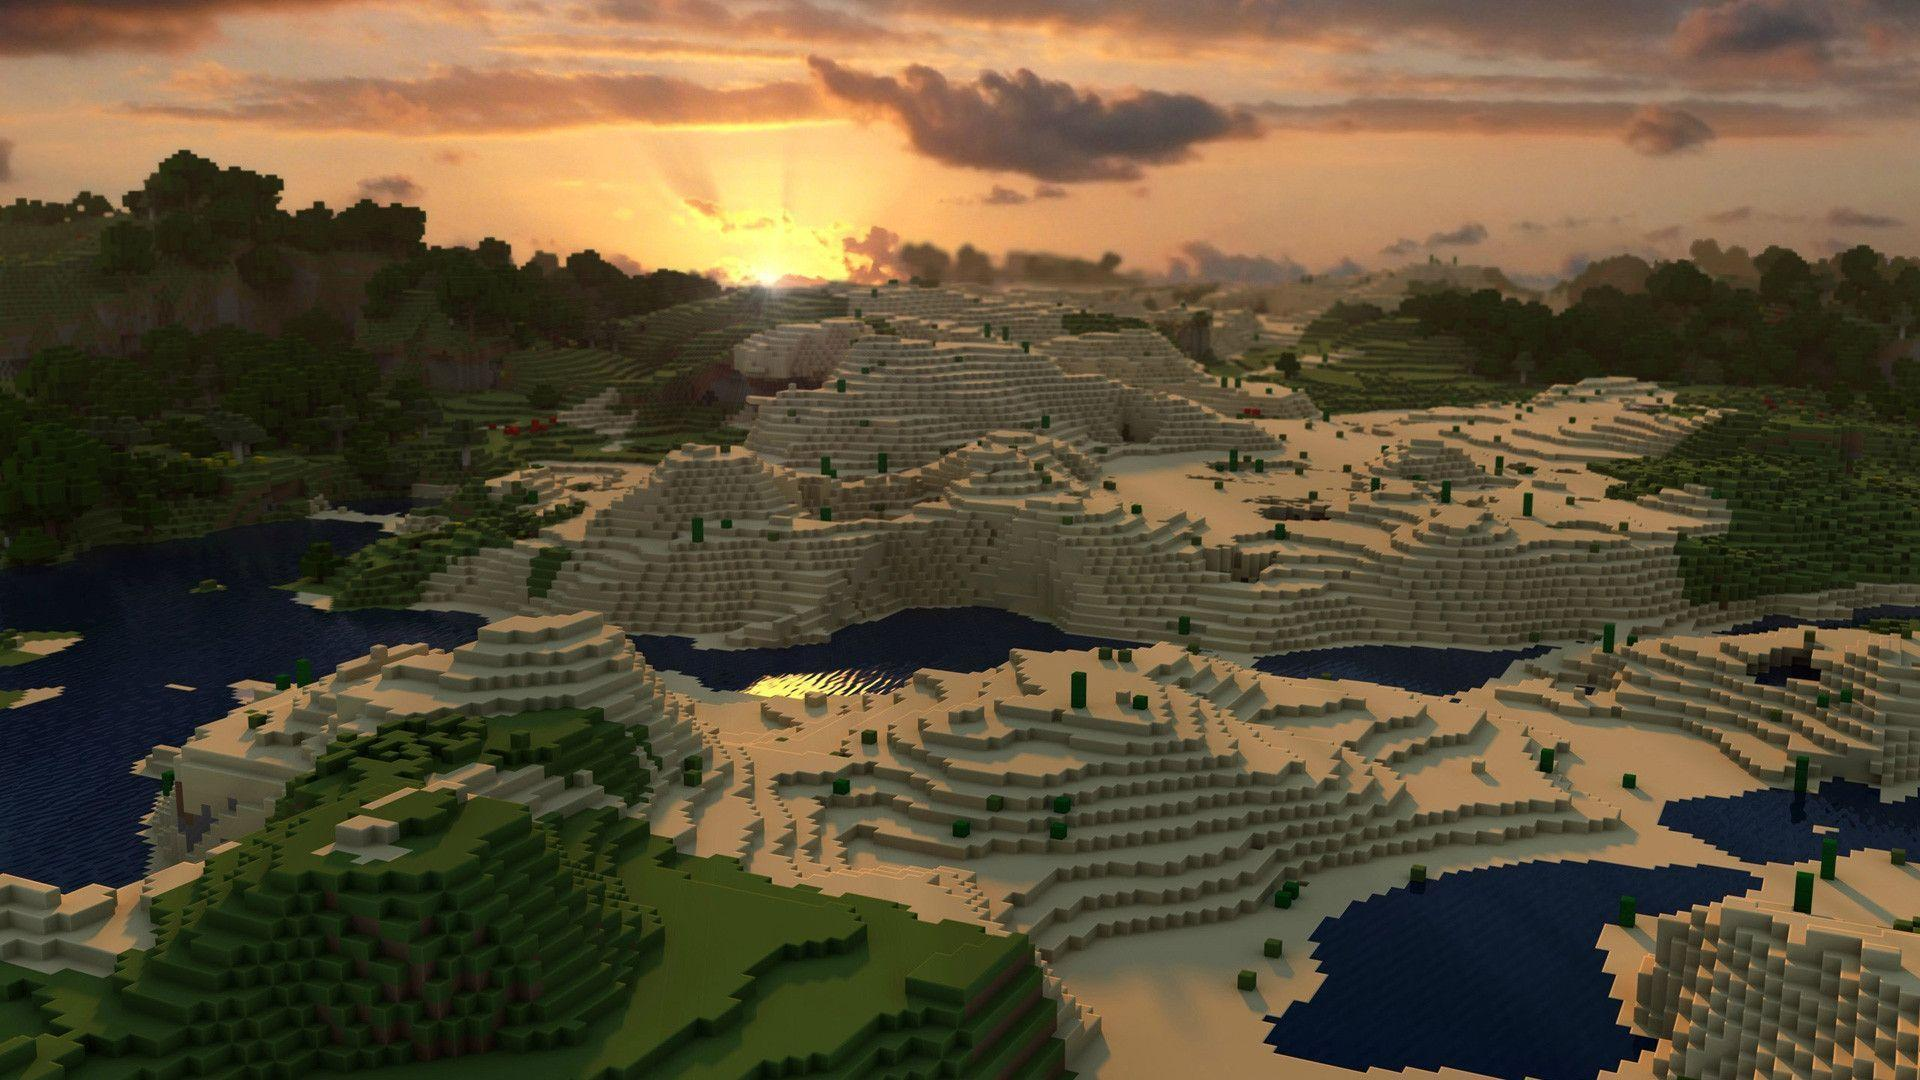 Minecraft Wallpapers 1920x1080   Wallpaper Cave Pix For   Minecraft Wallpapers 1920x1080